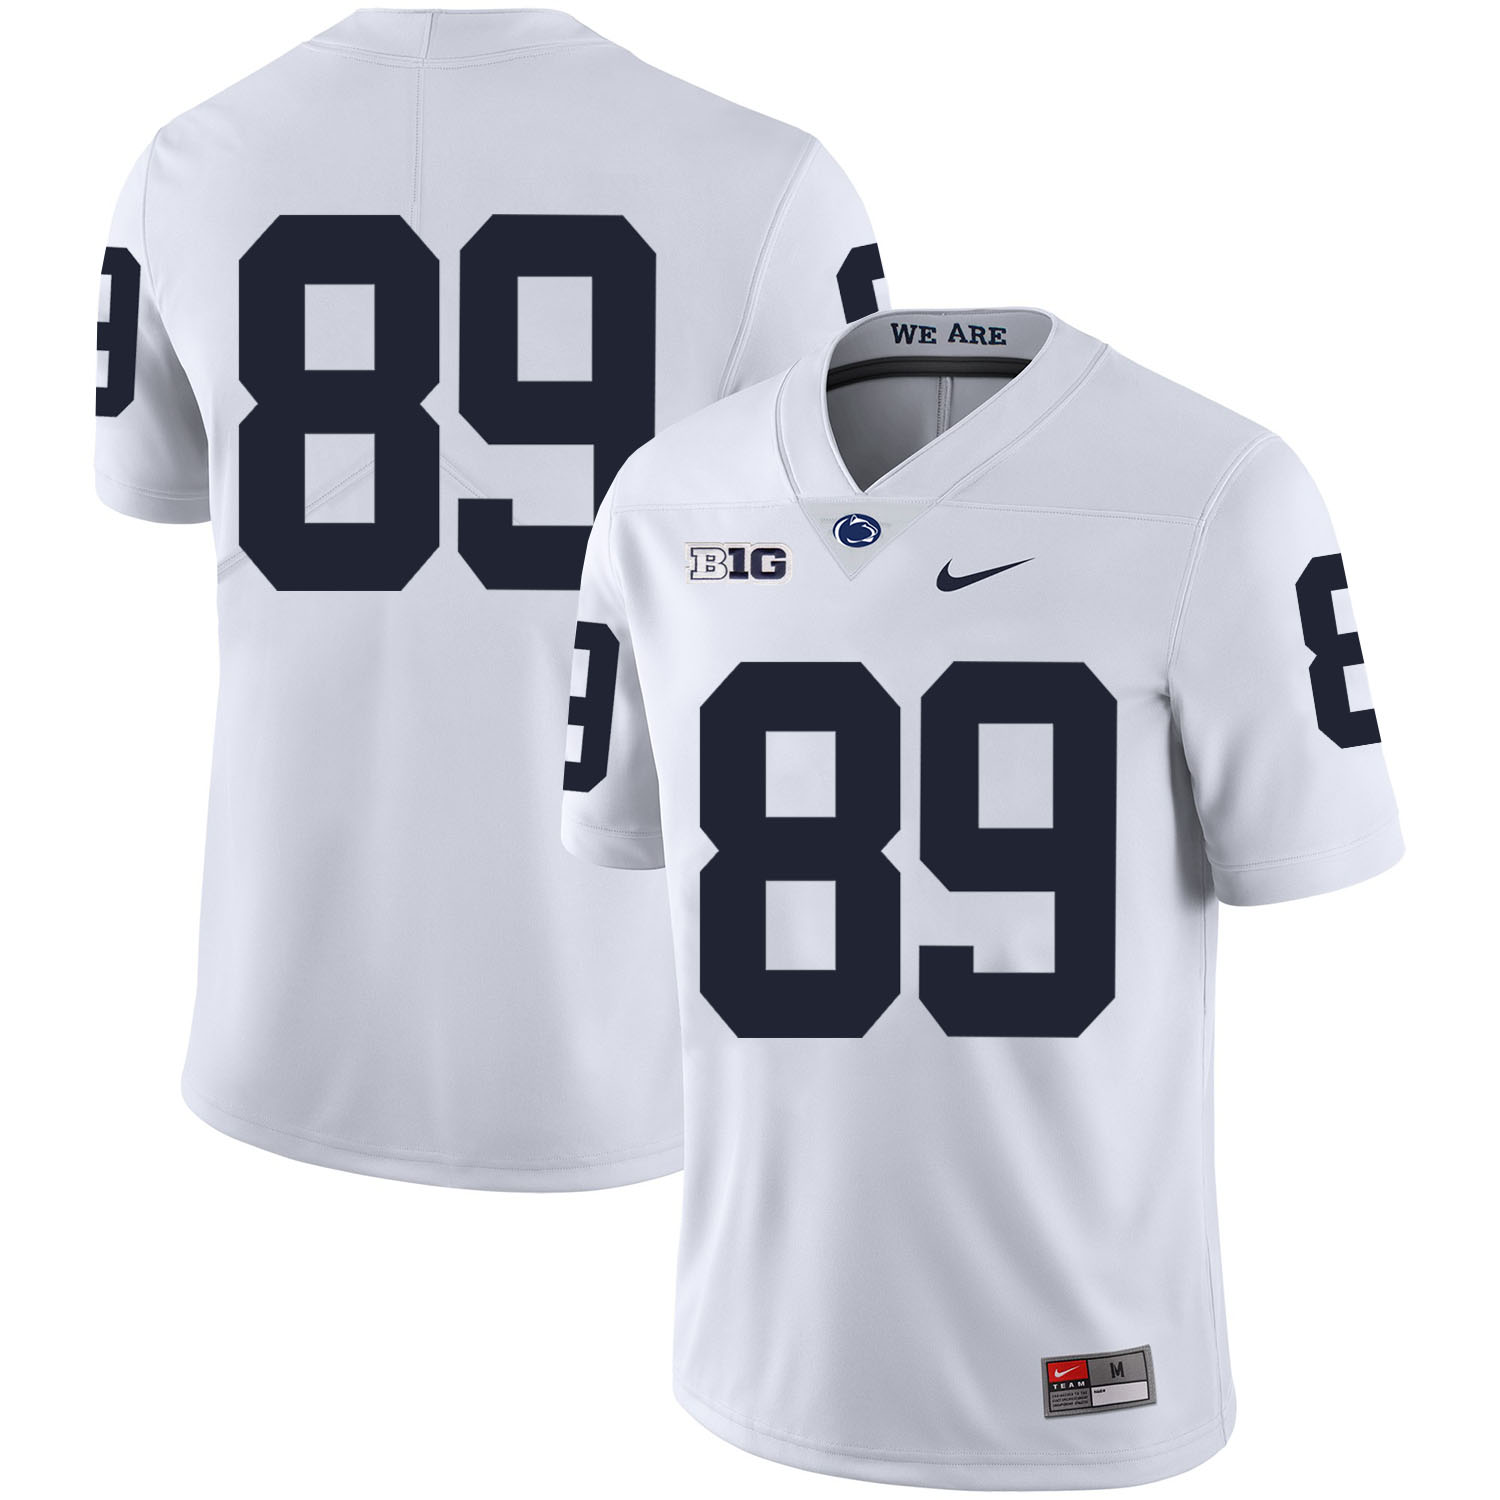 Penn State Nittany Lions 89 Garry Gilliam White Nike College Football Jersey